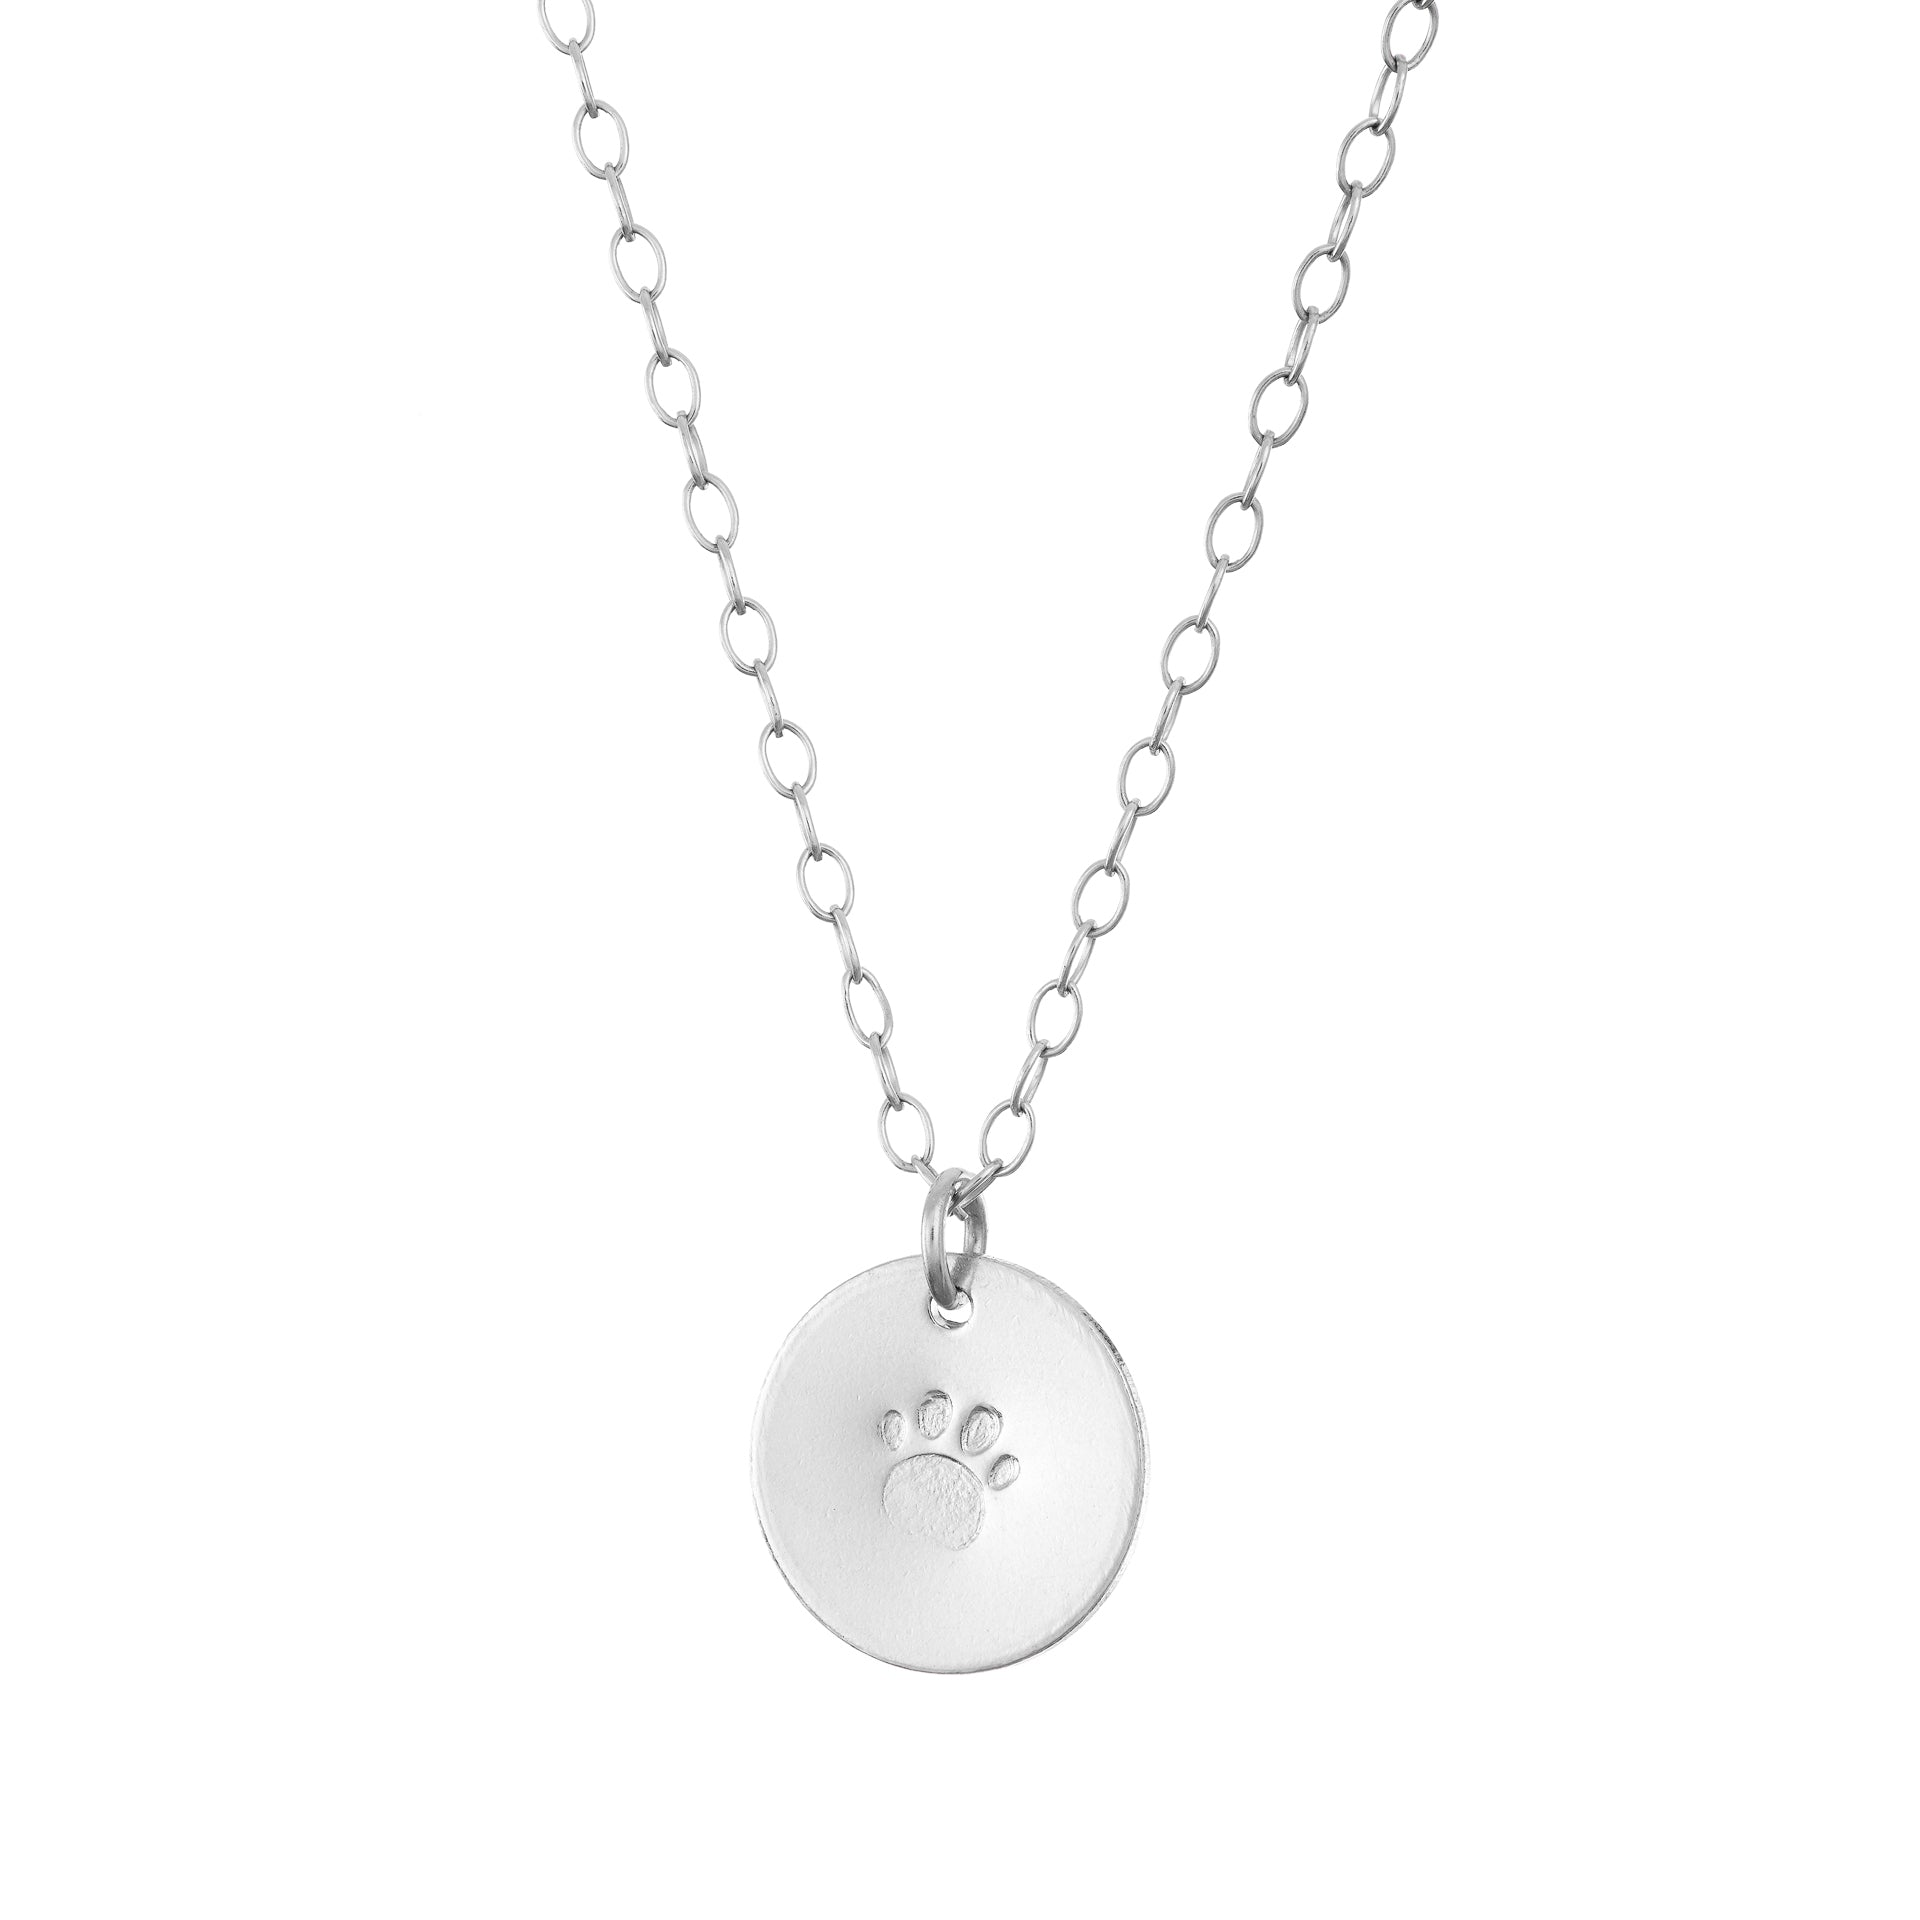 Personalise silver initial necklace with one disc deblaca jewellery personalise silver initial necklace with one disc mozeypictures Choice Image